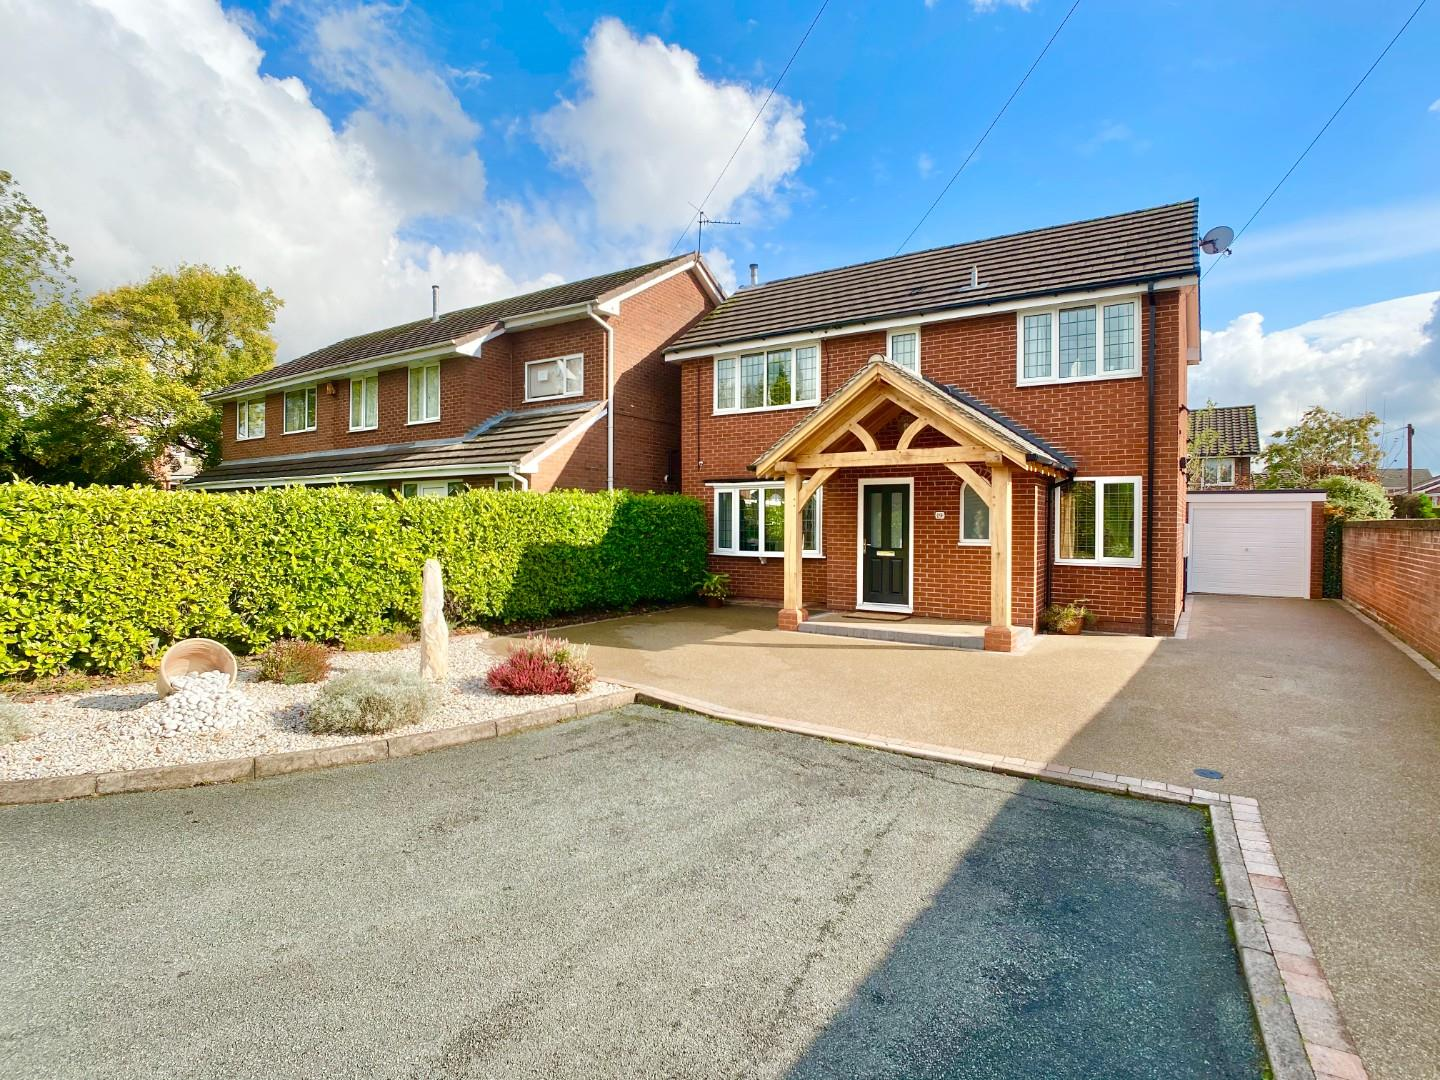 4 bed detached house for sale in Melville Court, Newcastle-under-Lyme, ST5